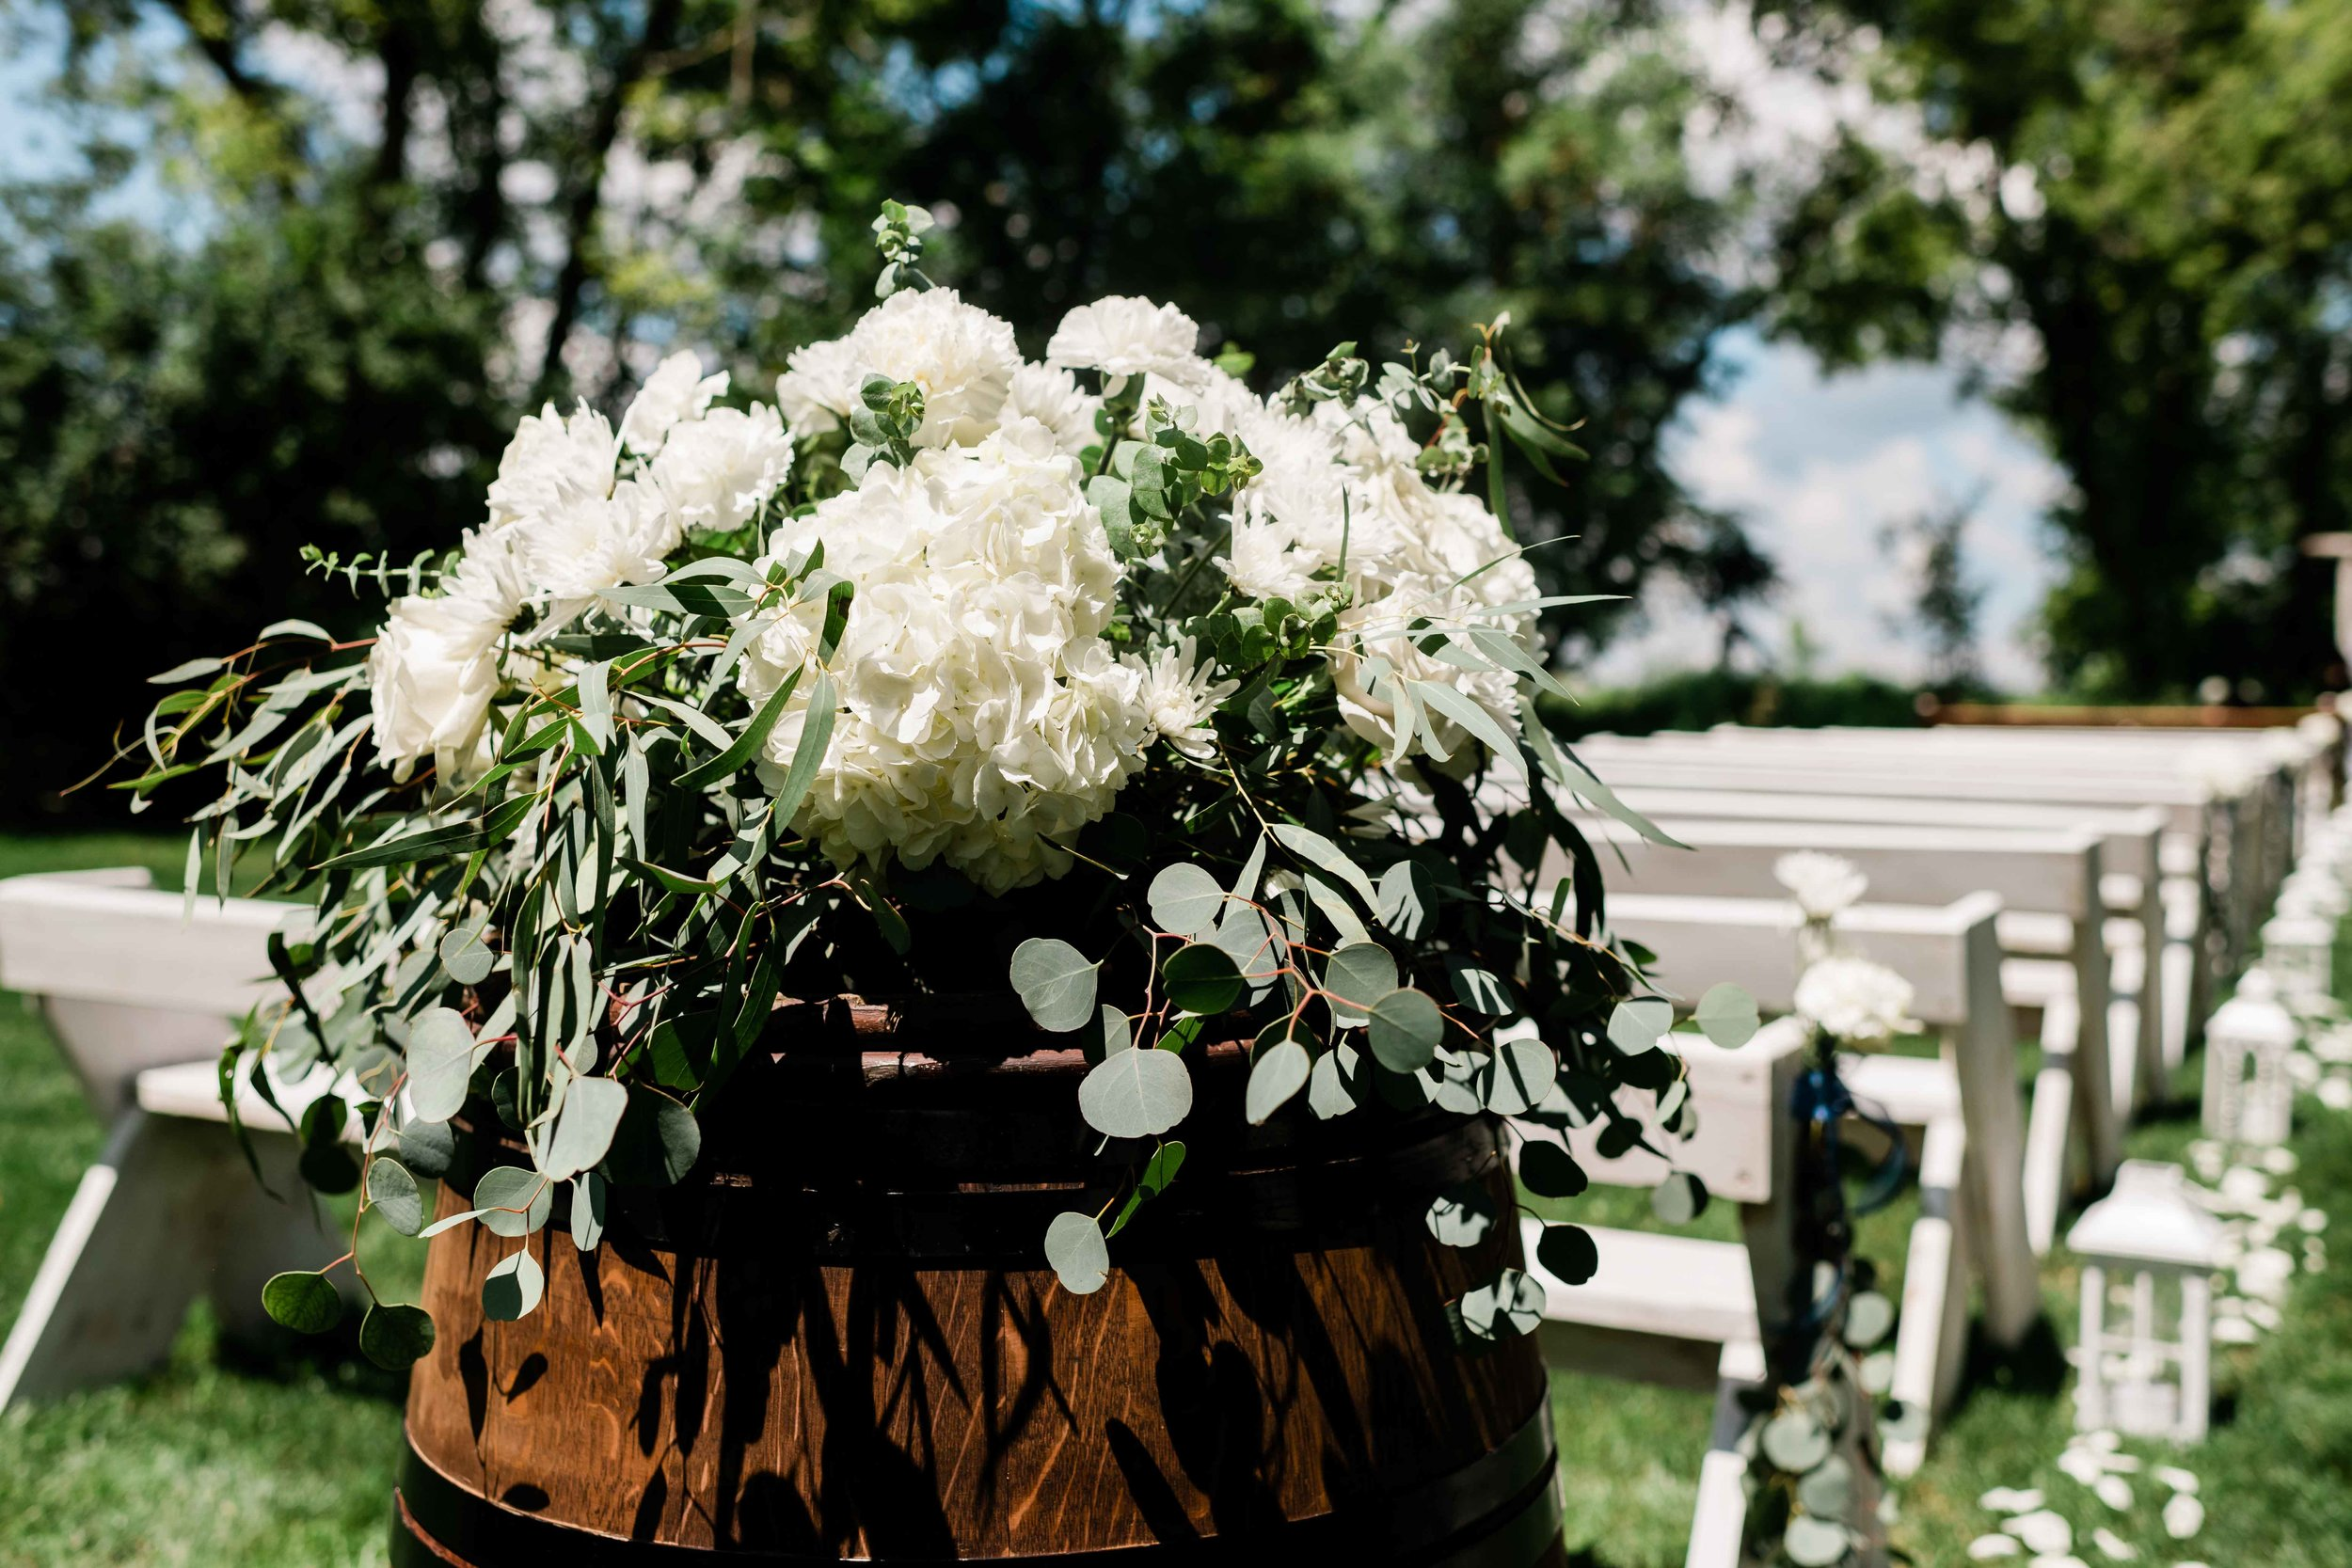 Flowers on top of wooden barrel